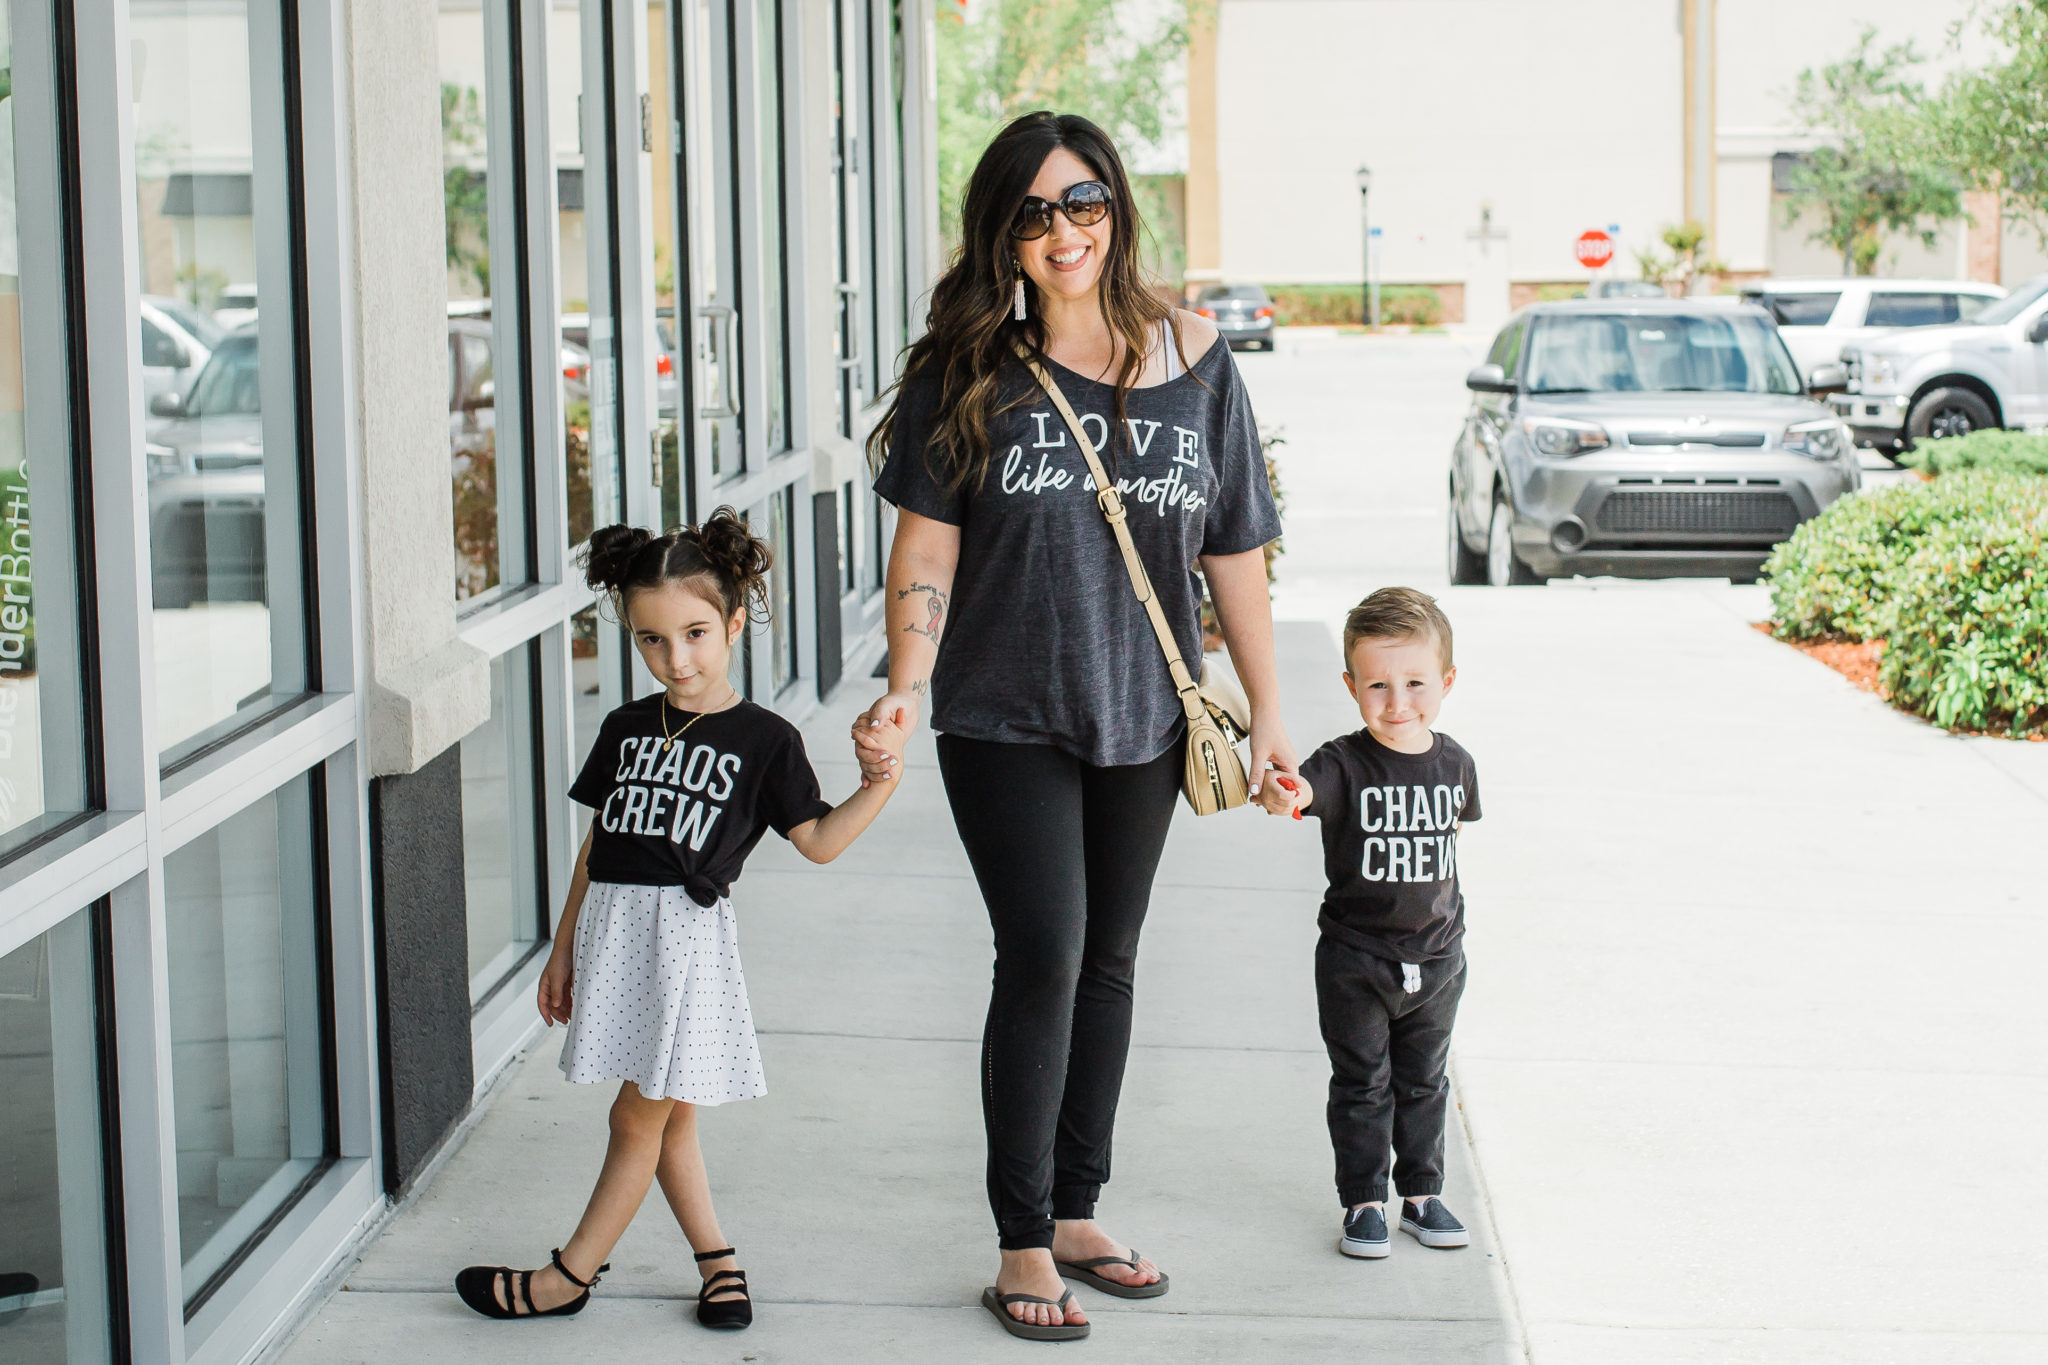 working mom guilt, best advice for working moms, work from home moms, single working mom guilt, new mom guilt